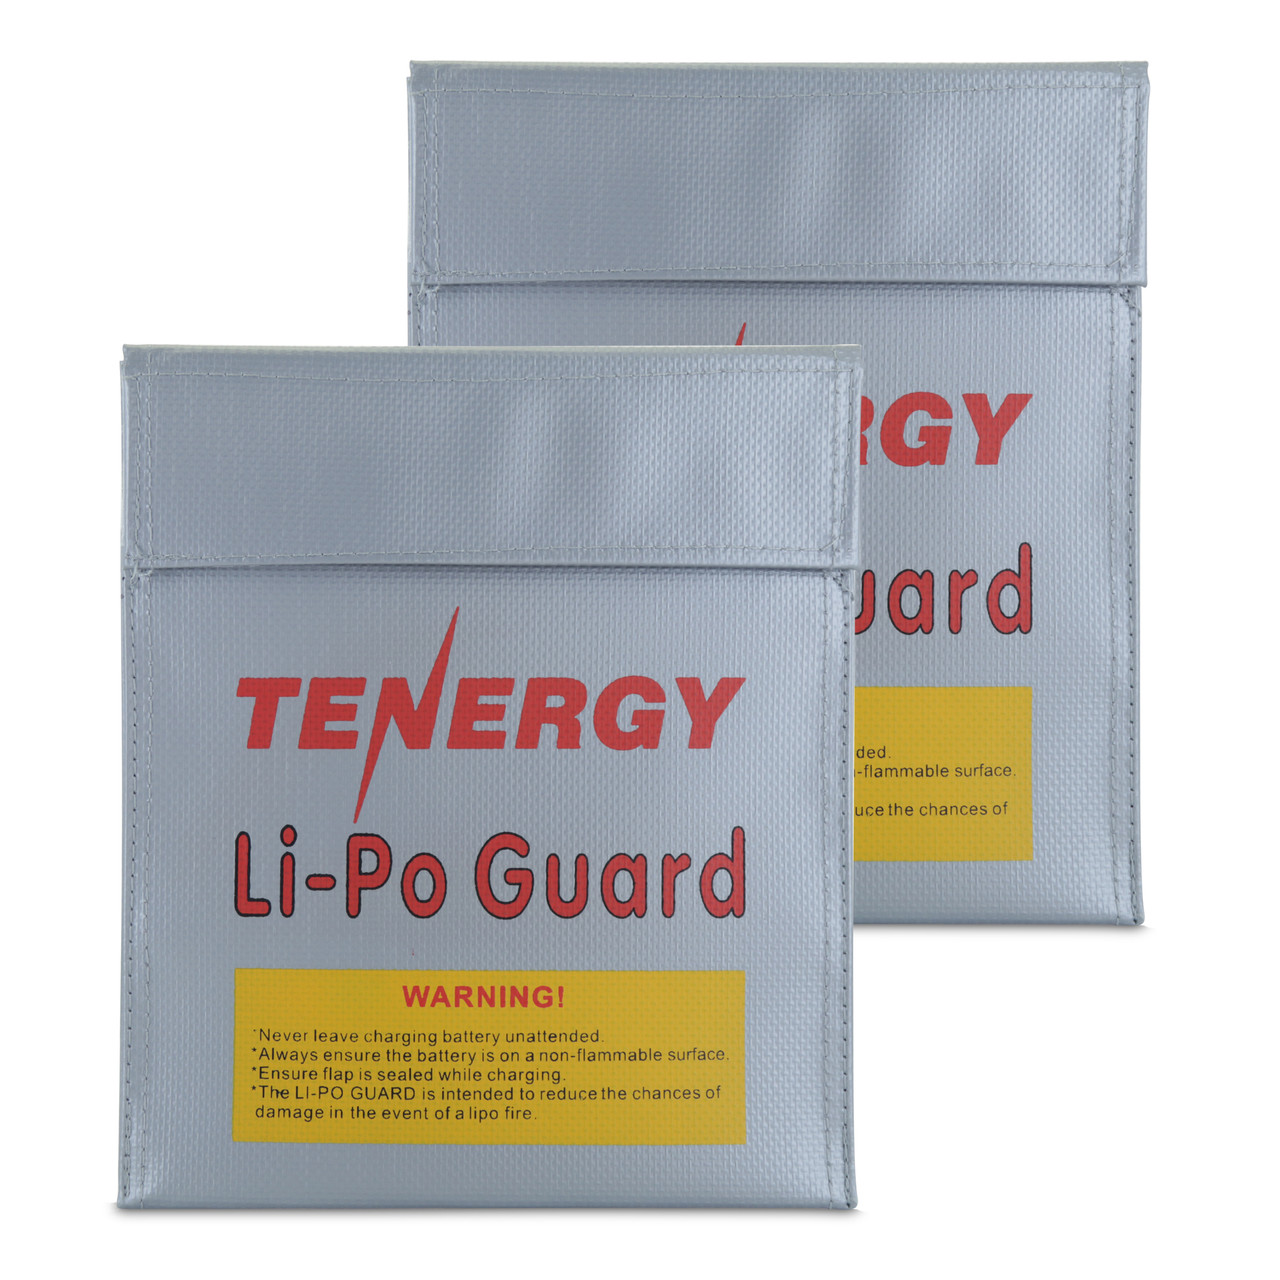 Tenergy 2 Pack Fireproof and explosion-proof lipo safe bags, 7x9inches each